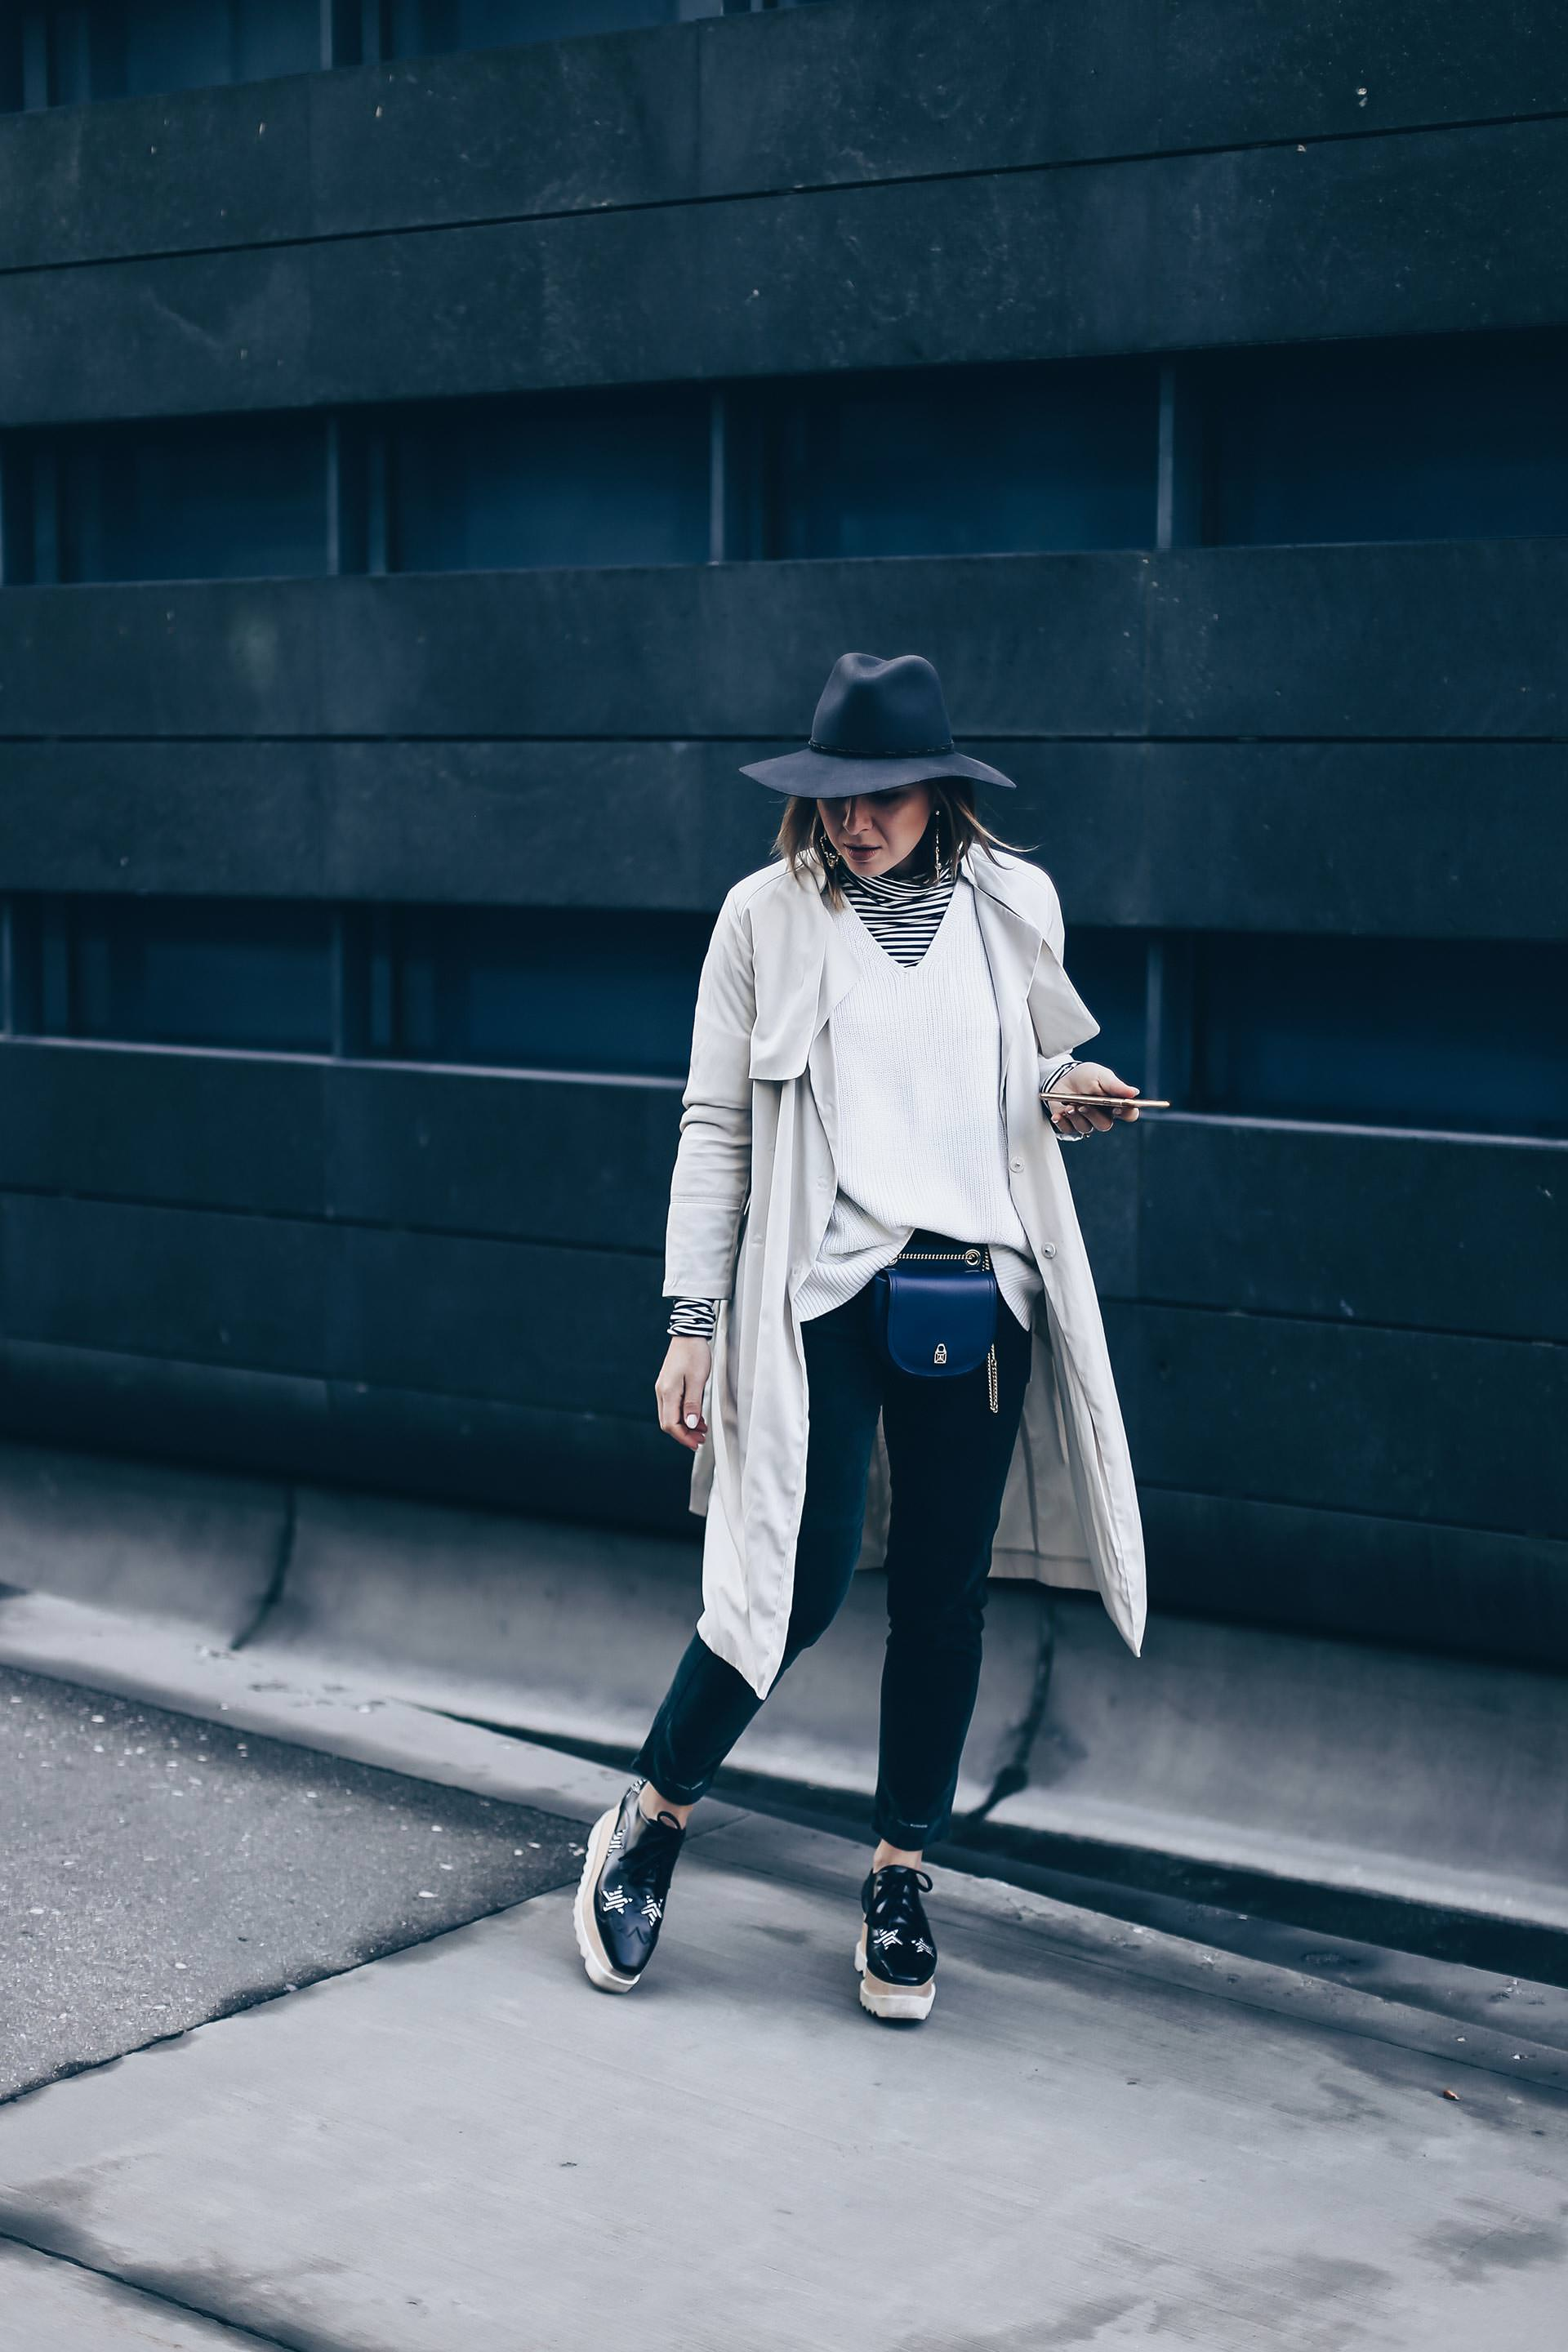 Wie kombiniert man eine Gürteltasche?, Wie trägt man eine Bauchtasche im Alltag?, Gürteltasche Trend, Outfit Idee, Outfit Inspiration für den Herbst, Closed Pedal Pusher Hose, Stella Elyse Star Schuhe, Trenchcoat Outfit, Fashion Blog, Modeblog, Style Blog, www.whoismocca.com